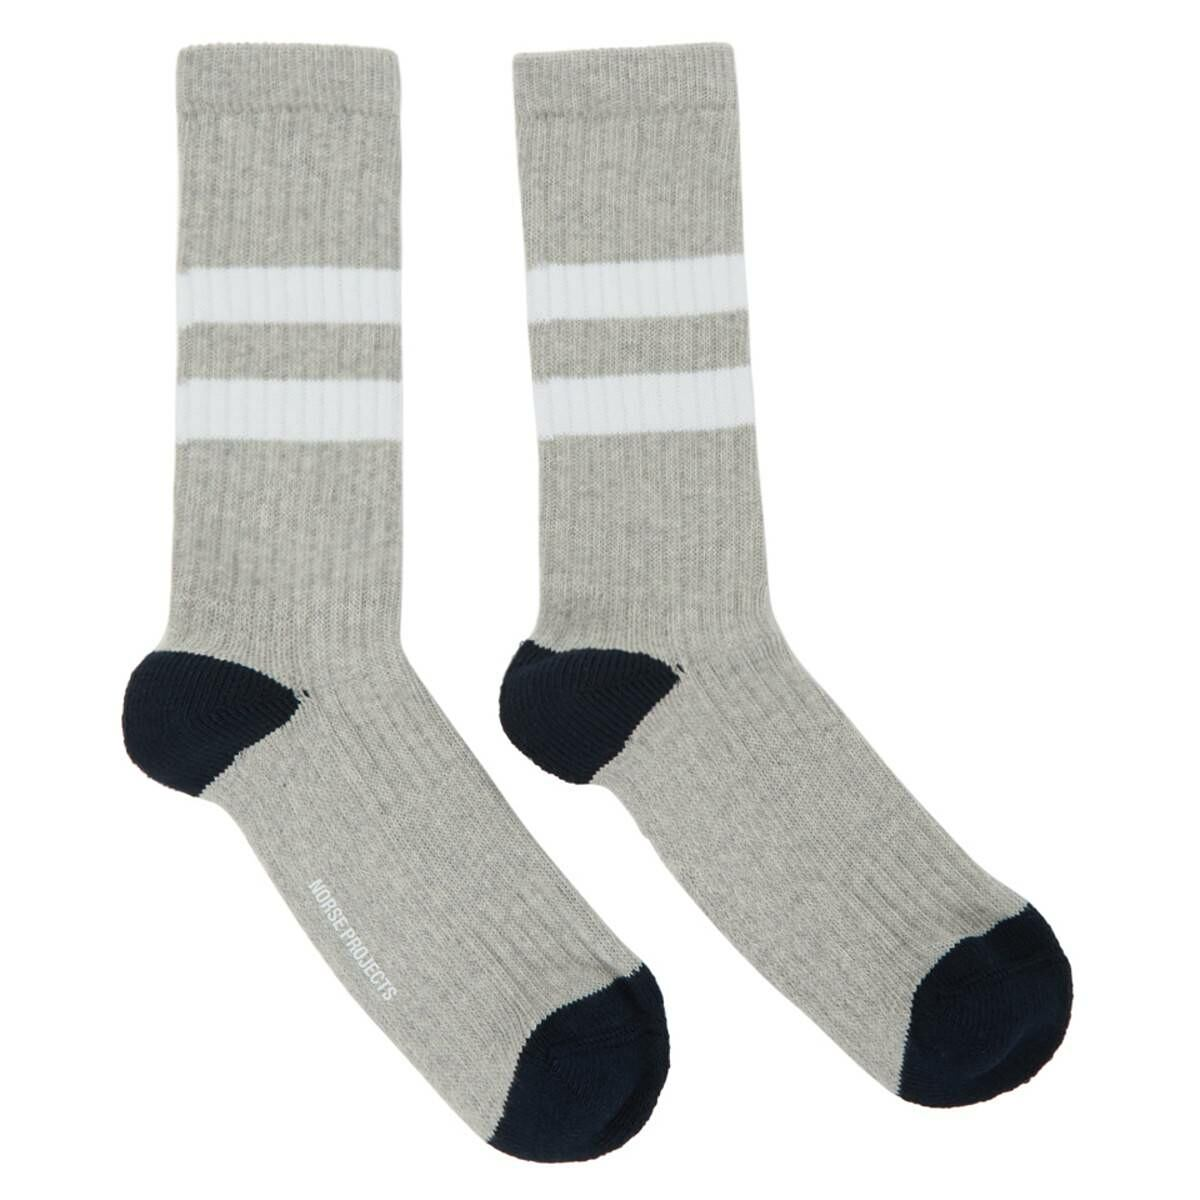 Norse Projects Grey Cotton Bjarki Sport Socks Ssense USA MEN Men ACCESSORIES Mens SOCKS